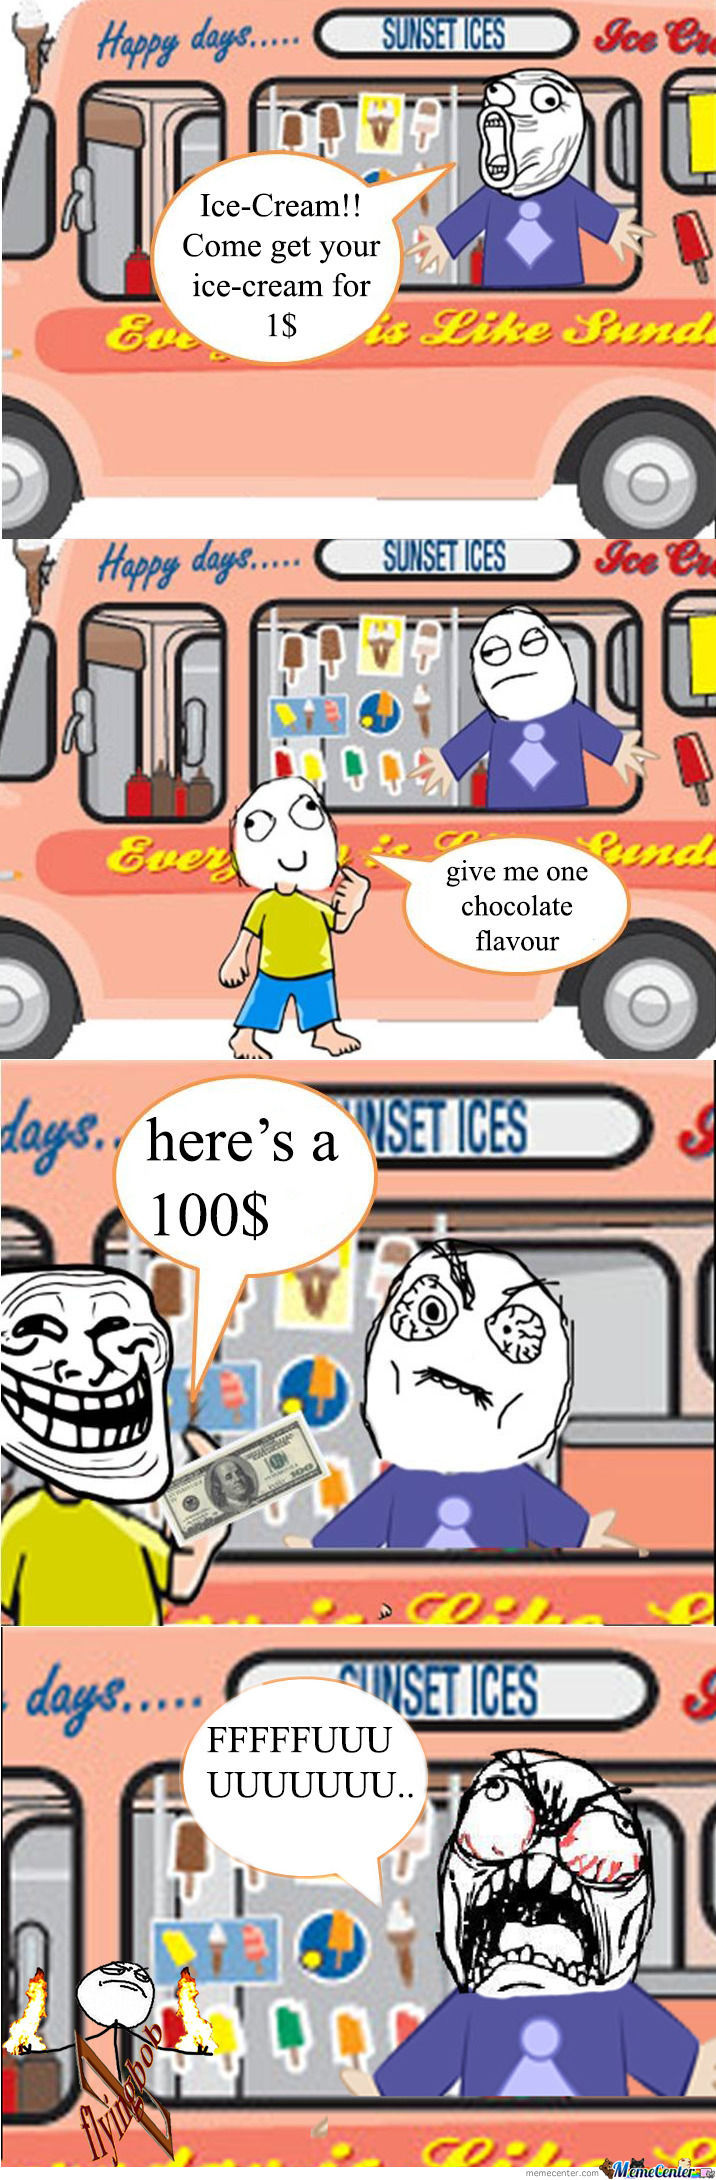 Trolling The Ice-Cram Man